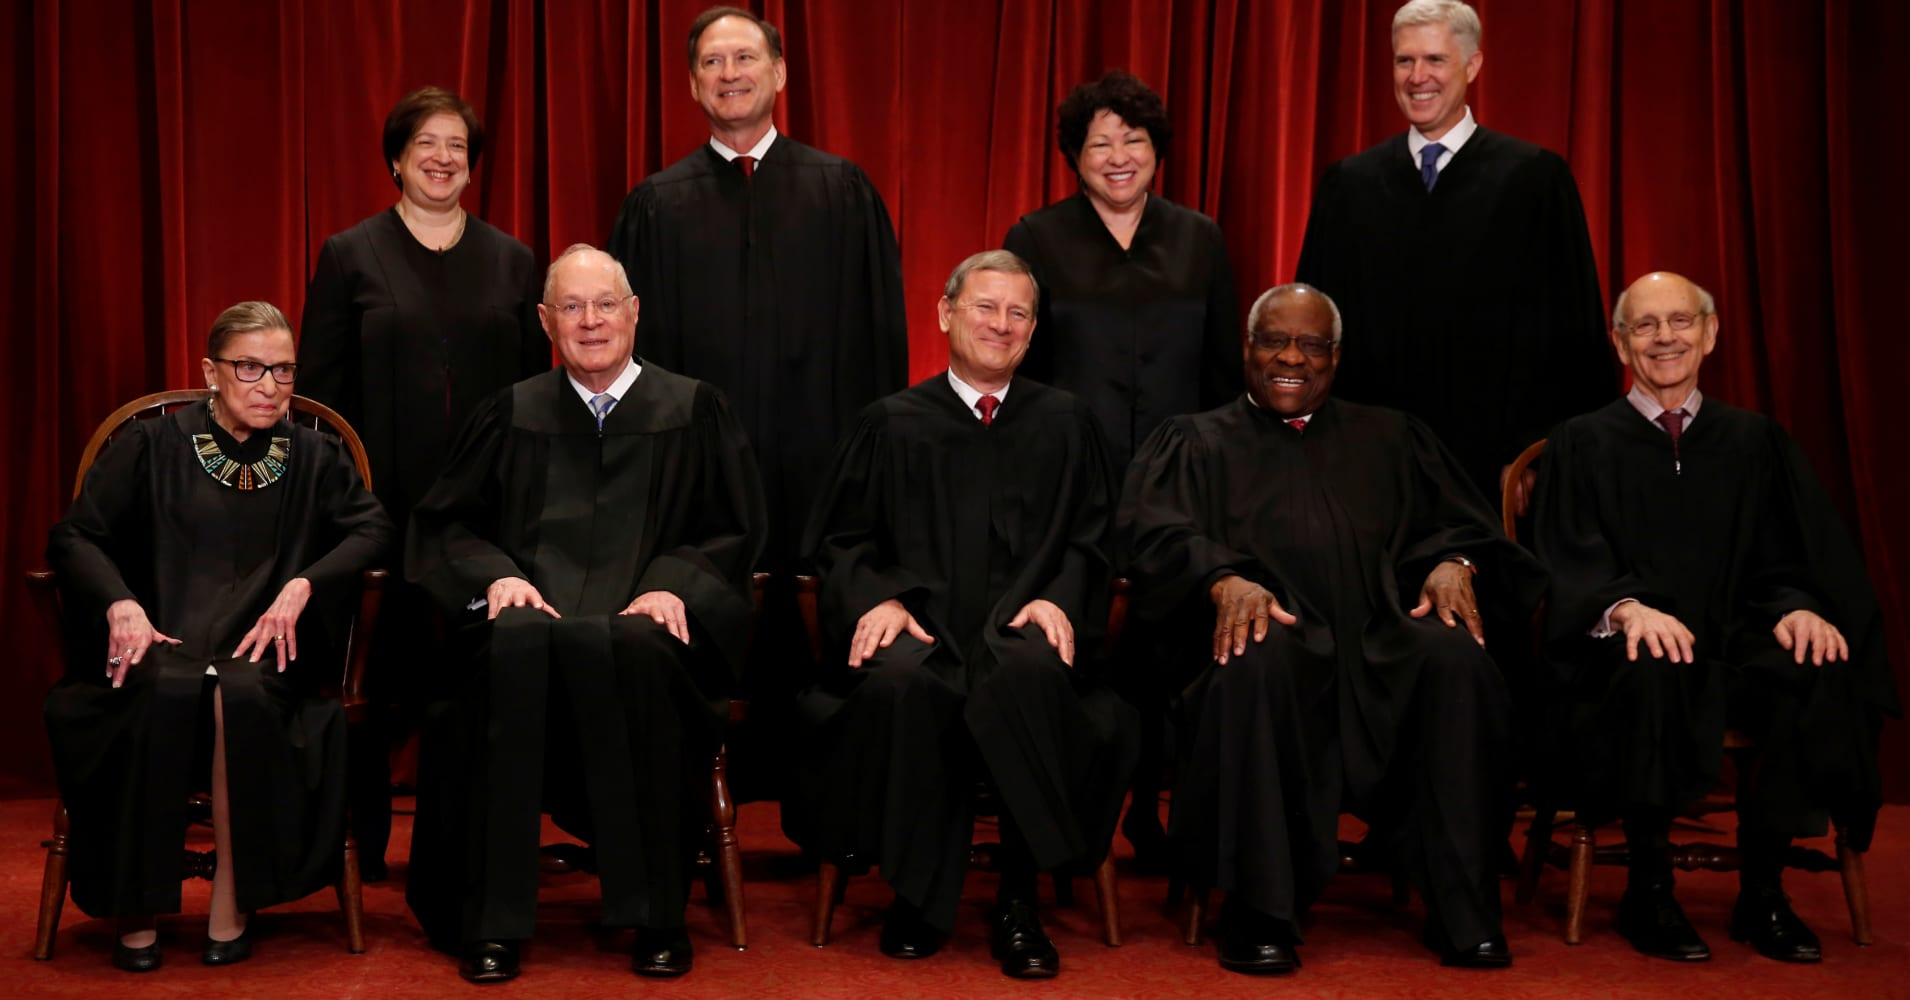 Supreme Court to rule on final cases, including travel ban, as talk about Kennedy retirement swirls